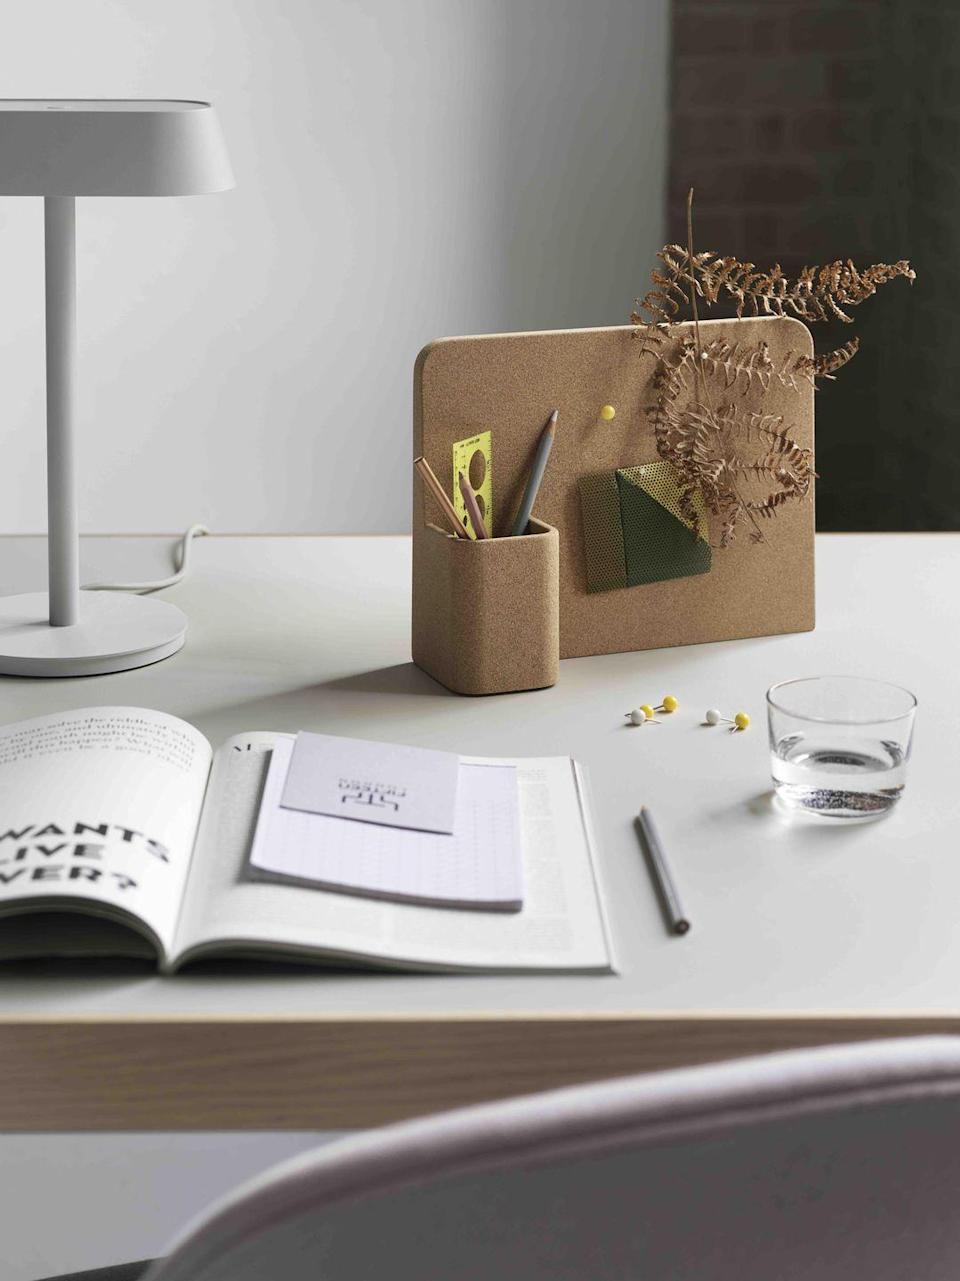 """<p>Muuto's 'Story' pinboard is an organiser and a creative canvas all in one. From notes and to-do lists to favourite photos, it allows you to change up your deskscape in an instant – providing inspiration and a handy outlet for procrastination. £59, <a href=""""https://www.finnishdesignshop.com/decoration-posters-memory-boards-memory-boards-story-pinboard-cork-p-35106.html?region=gb"""" rel=""""nofollow noopener"""" target=""""_blank"""" data-ylk=""""slk:finnishdesignshop.com"""" class=""""link rapid-noclick-resp"""">finnishdesignshop.com</a></p>"""